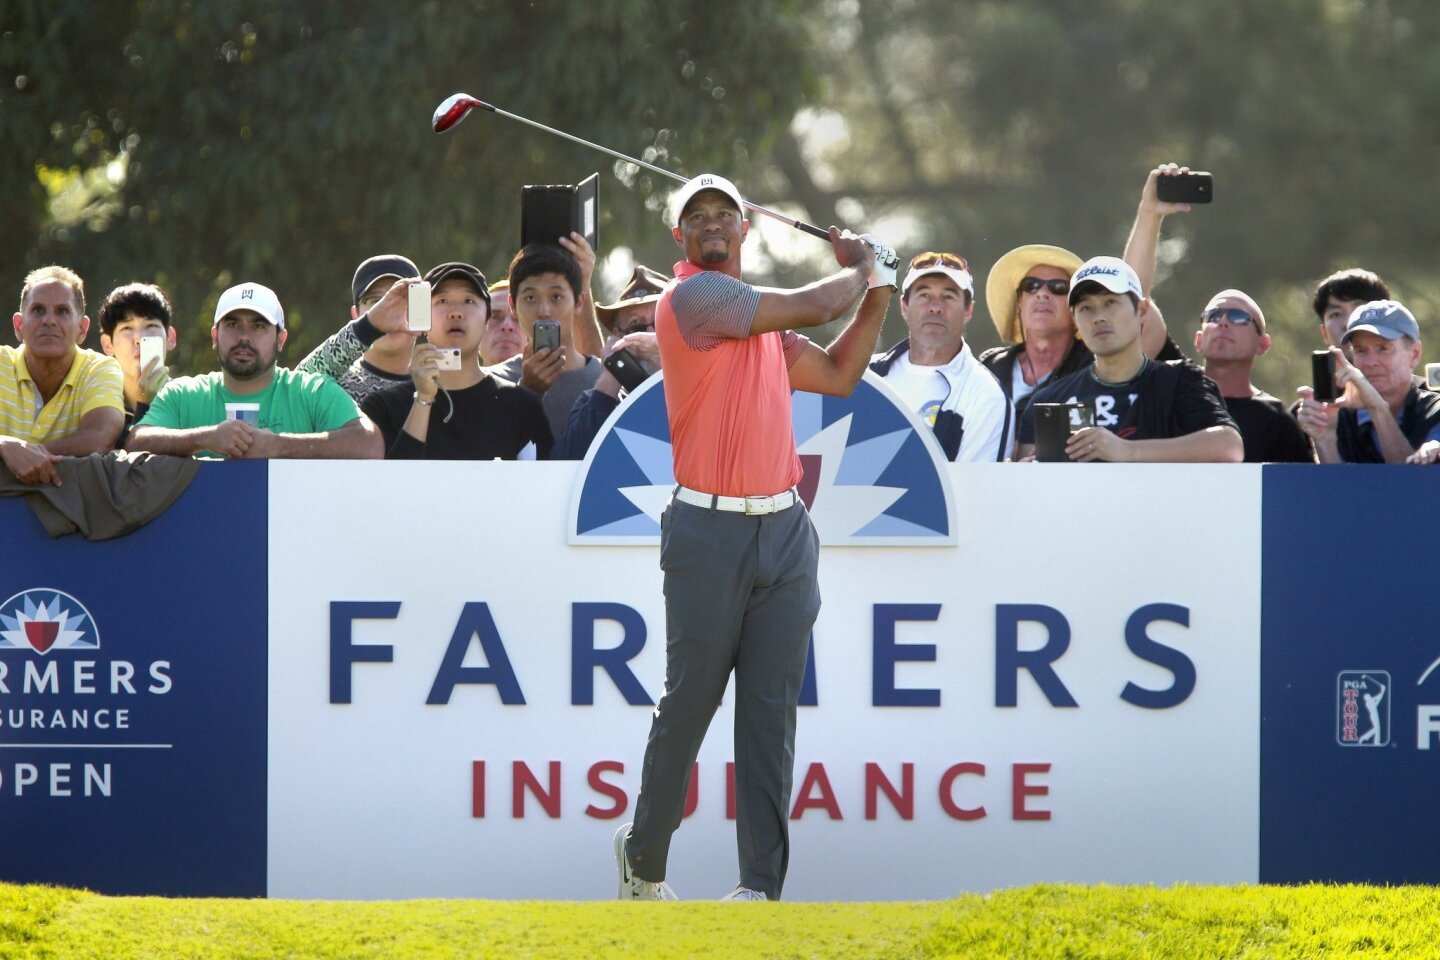 Golf fans watch Tiger Woods' ball sail after he hit from the South Course 18th tee as he and other golfer play in the Pro-Am of the Farmers Insurance Open at Torrey Pines Golf Course in La Jolla on Wednesday, January 22, 2013.